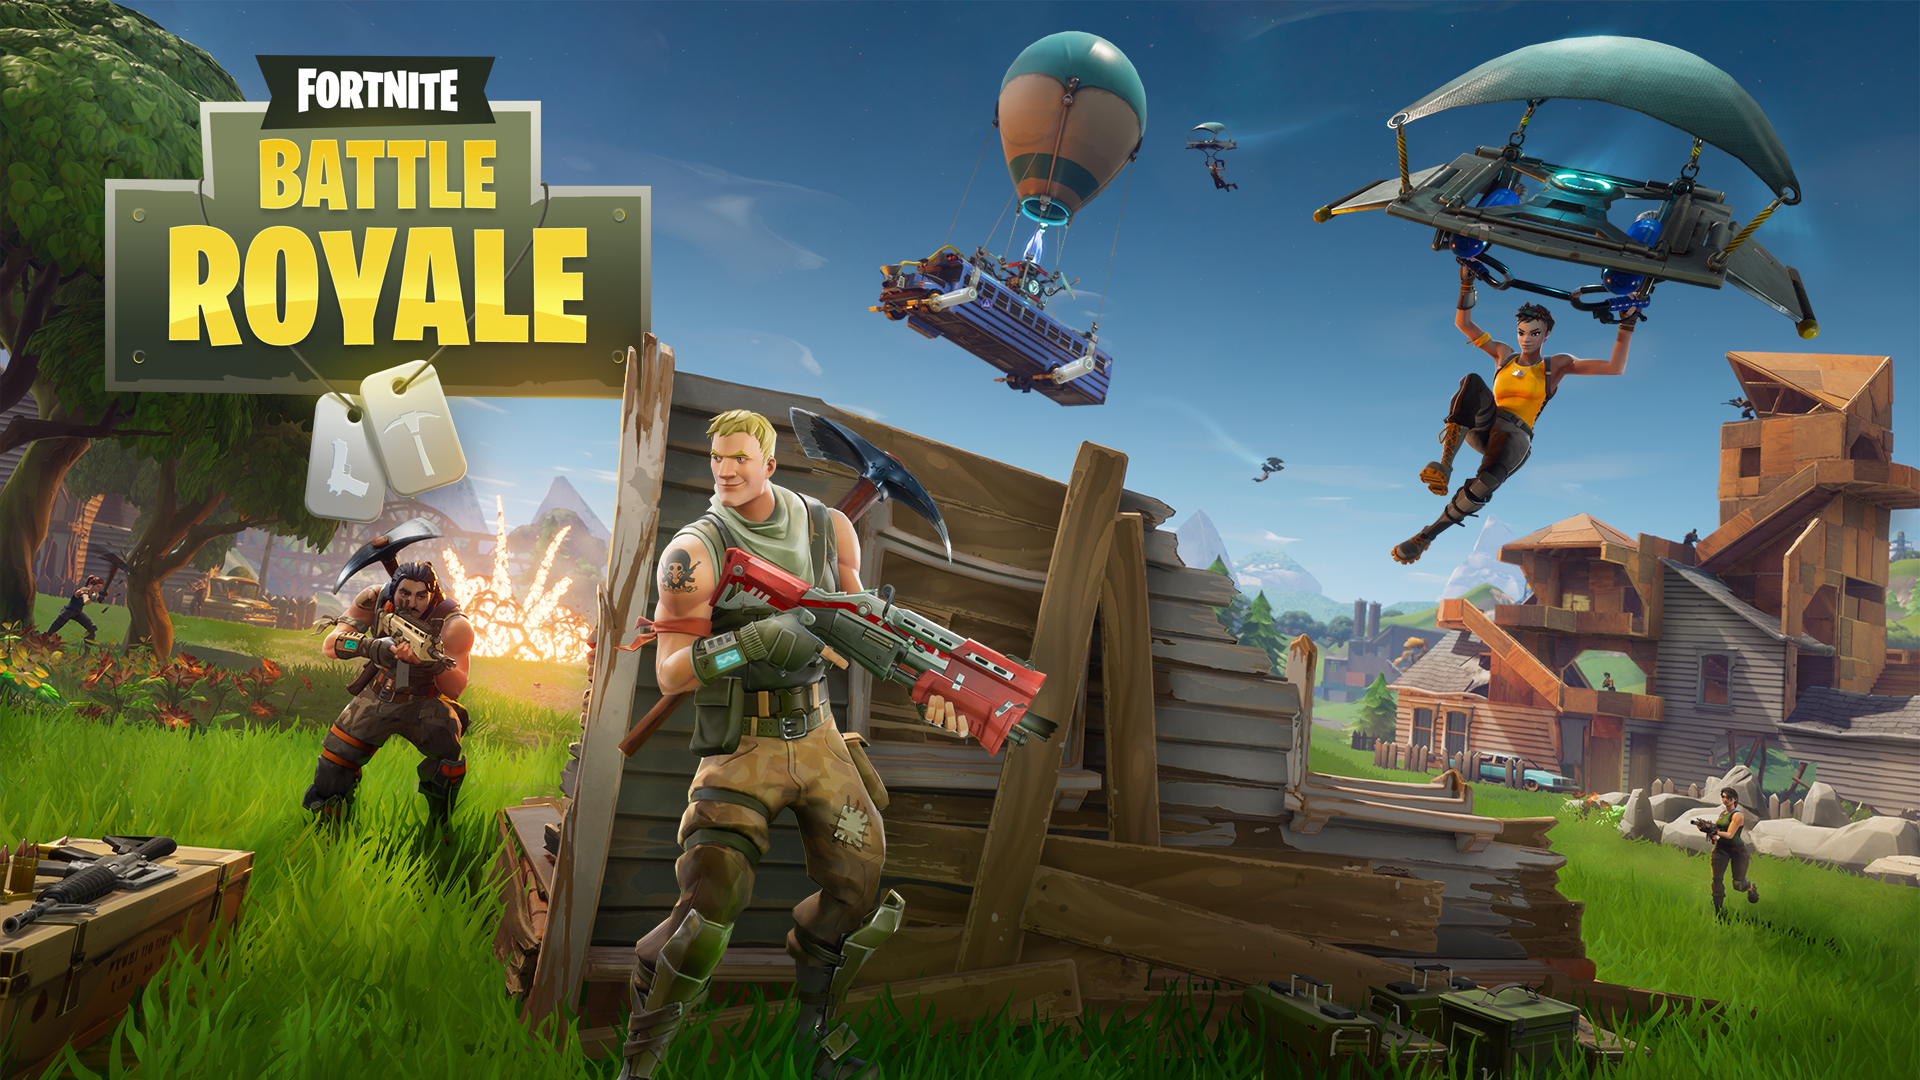 fortnite pc download battle royale